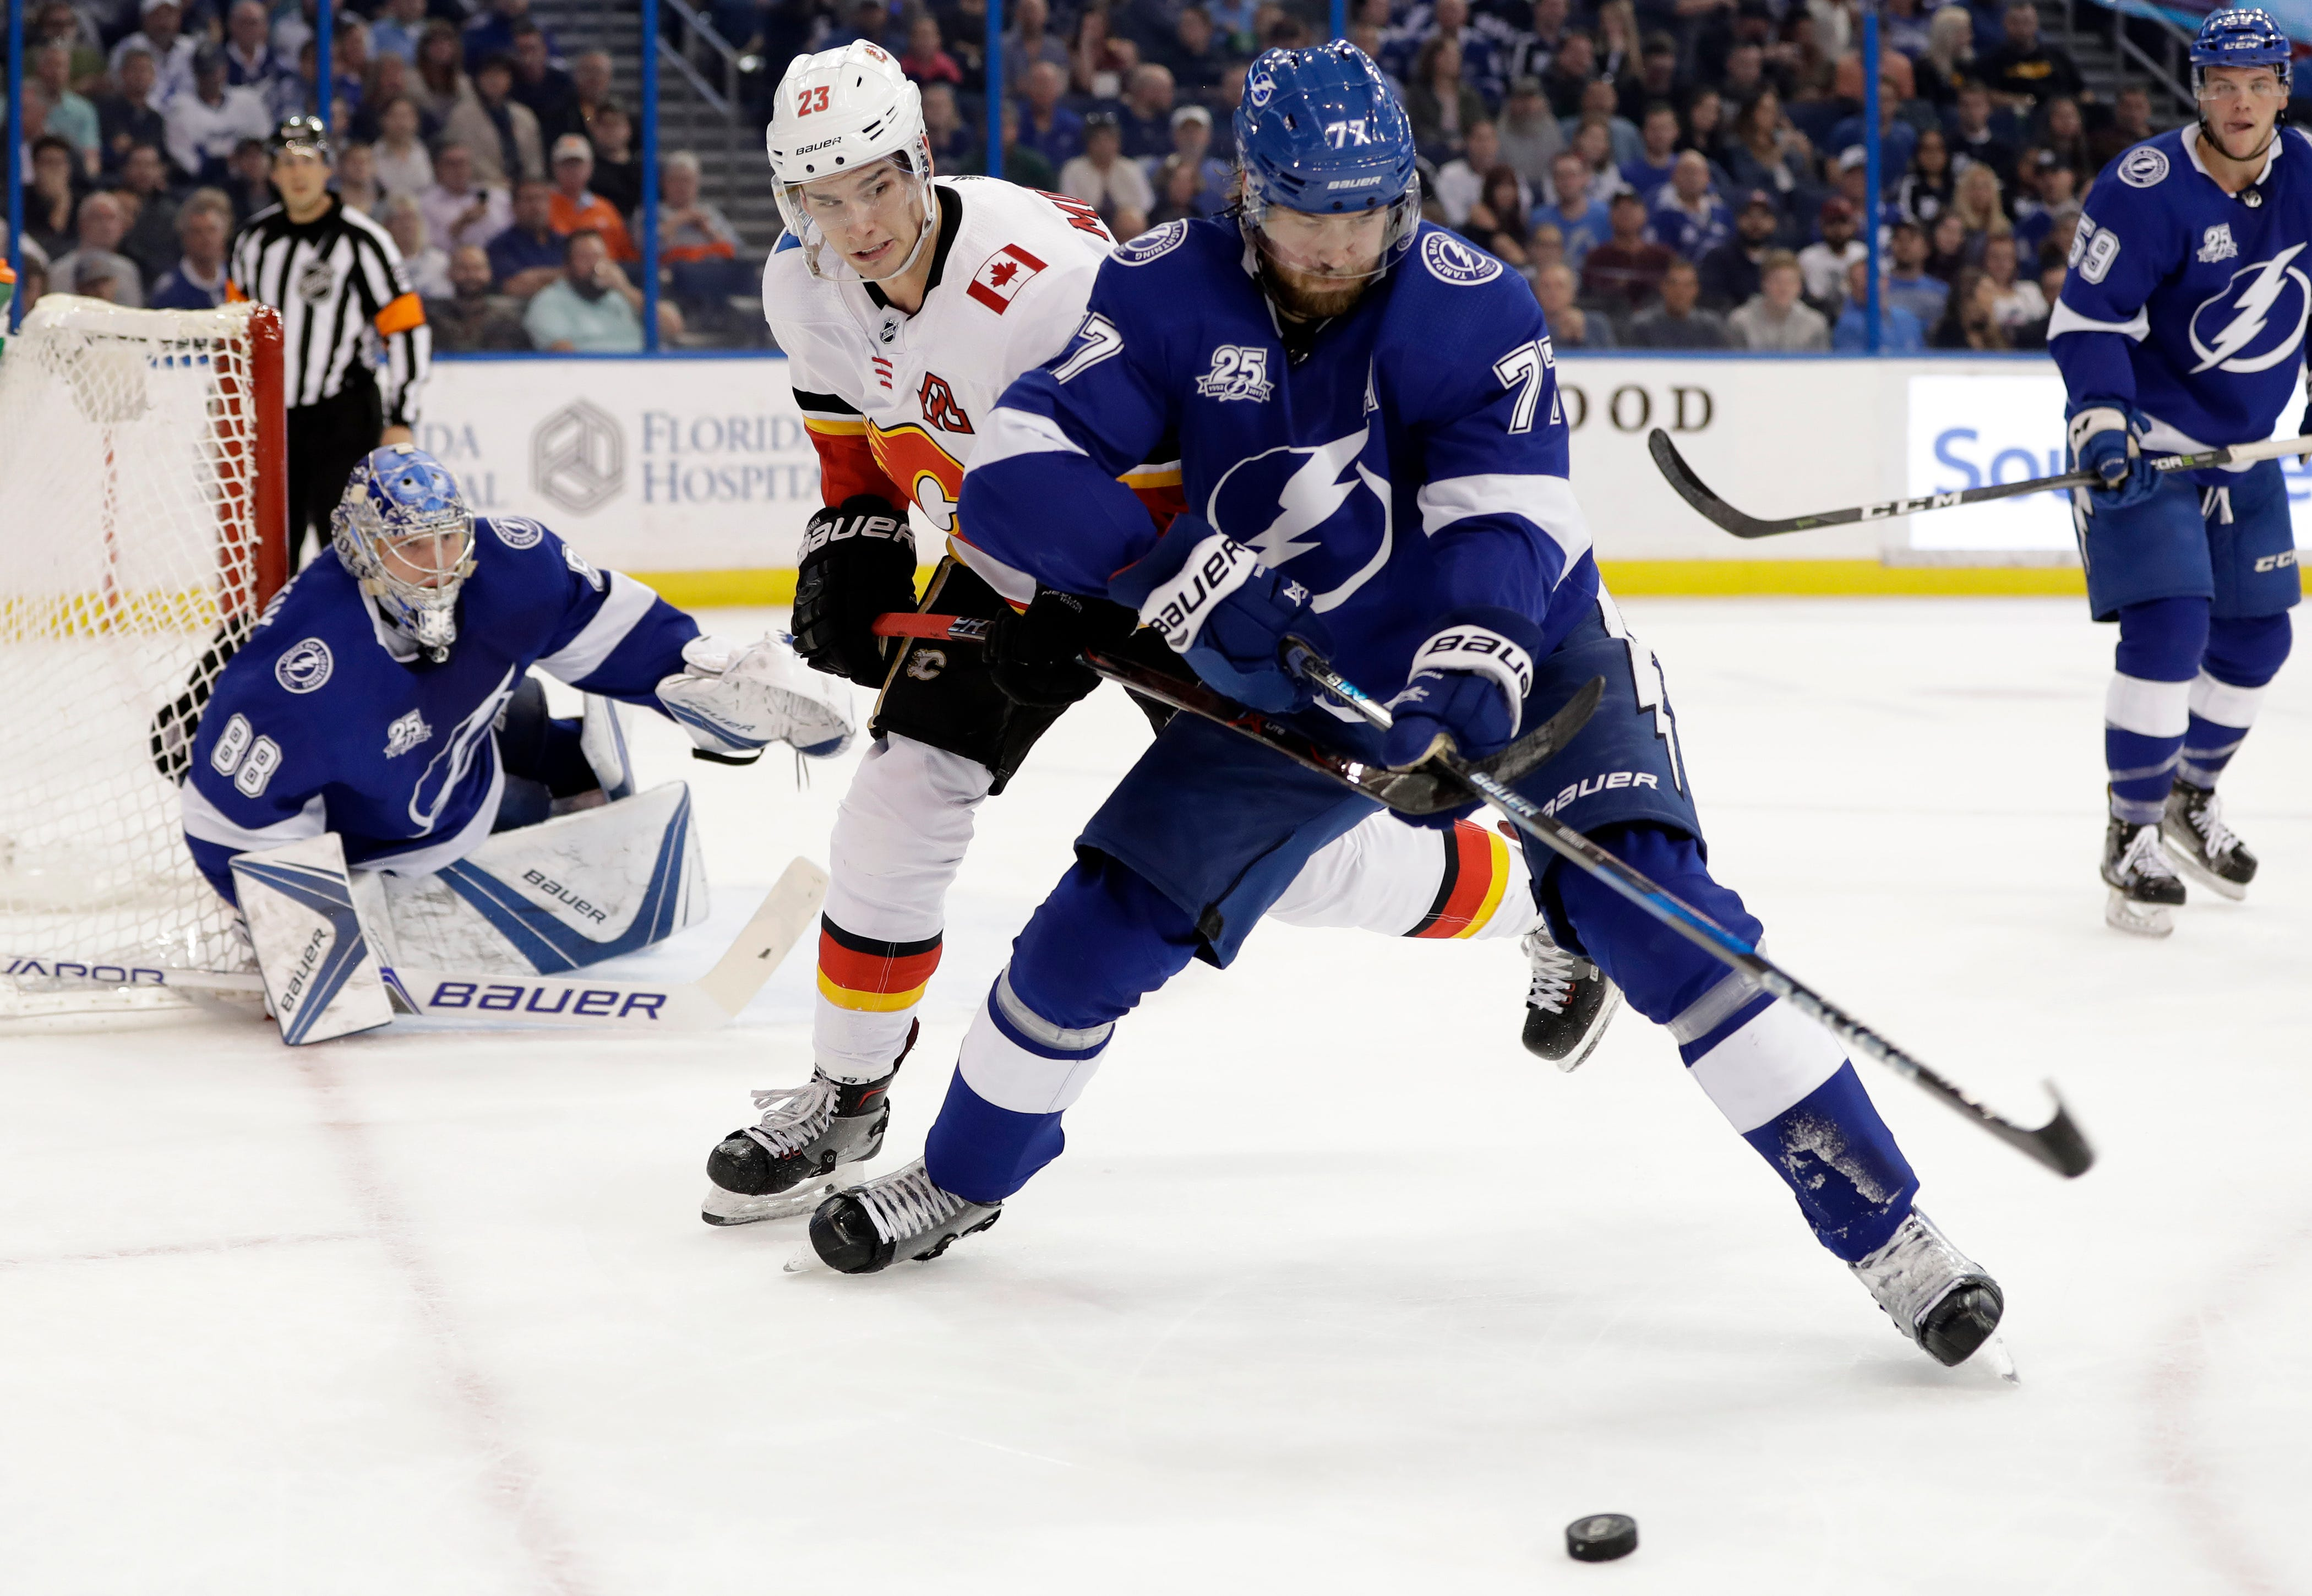 Lightning's Hedman out 3-to-6 weeks with lower-body injury